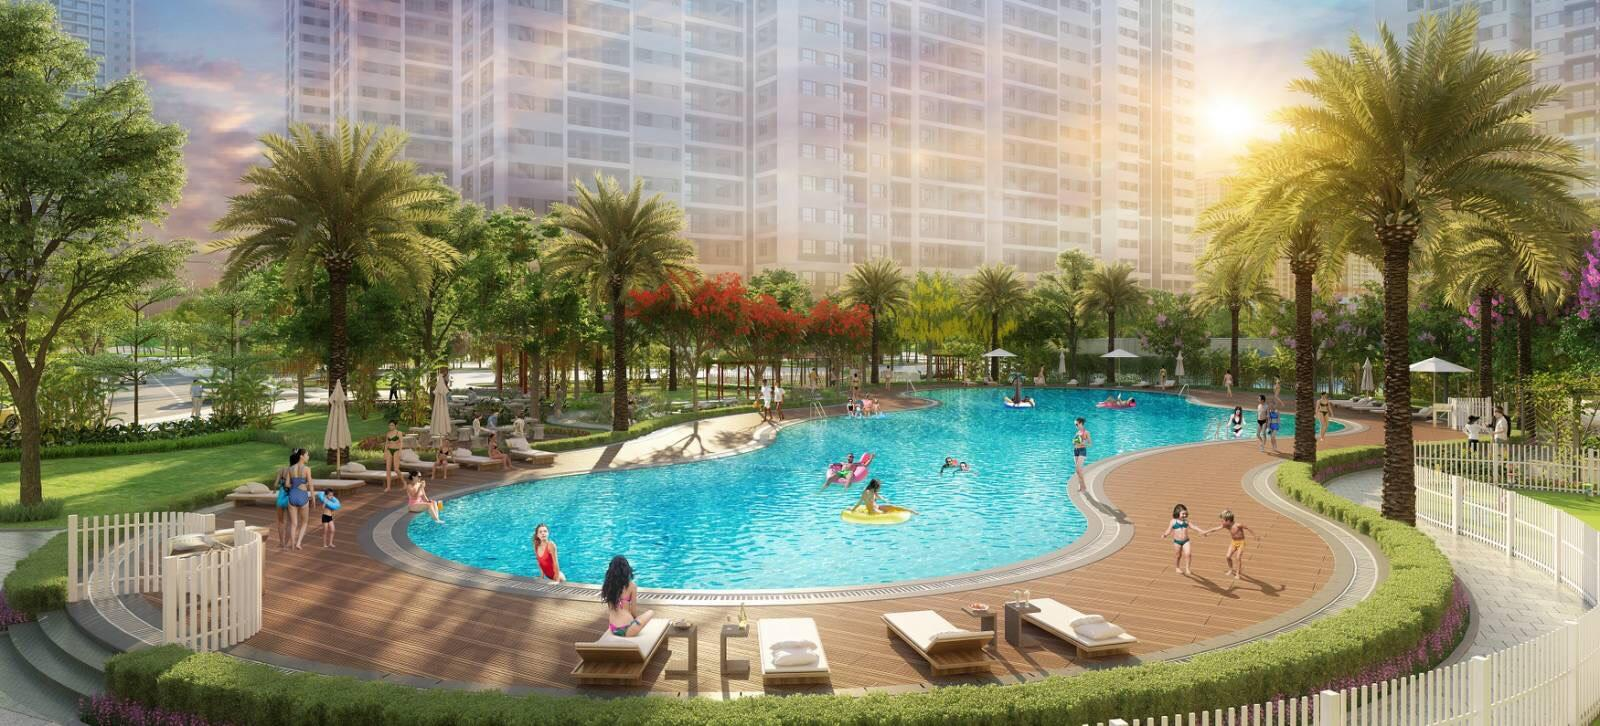 A picture containing tree, resort, outdoor, pool  Description automatically generated